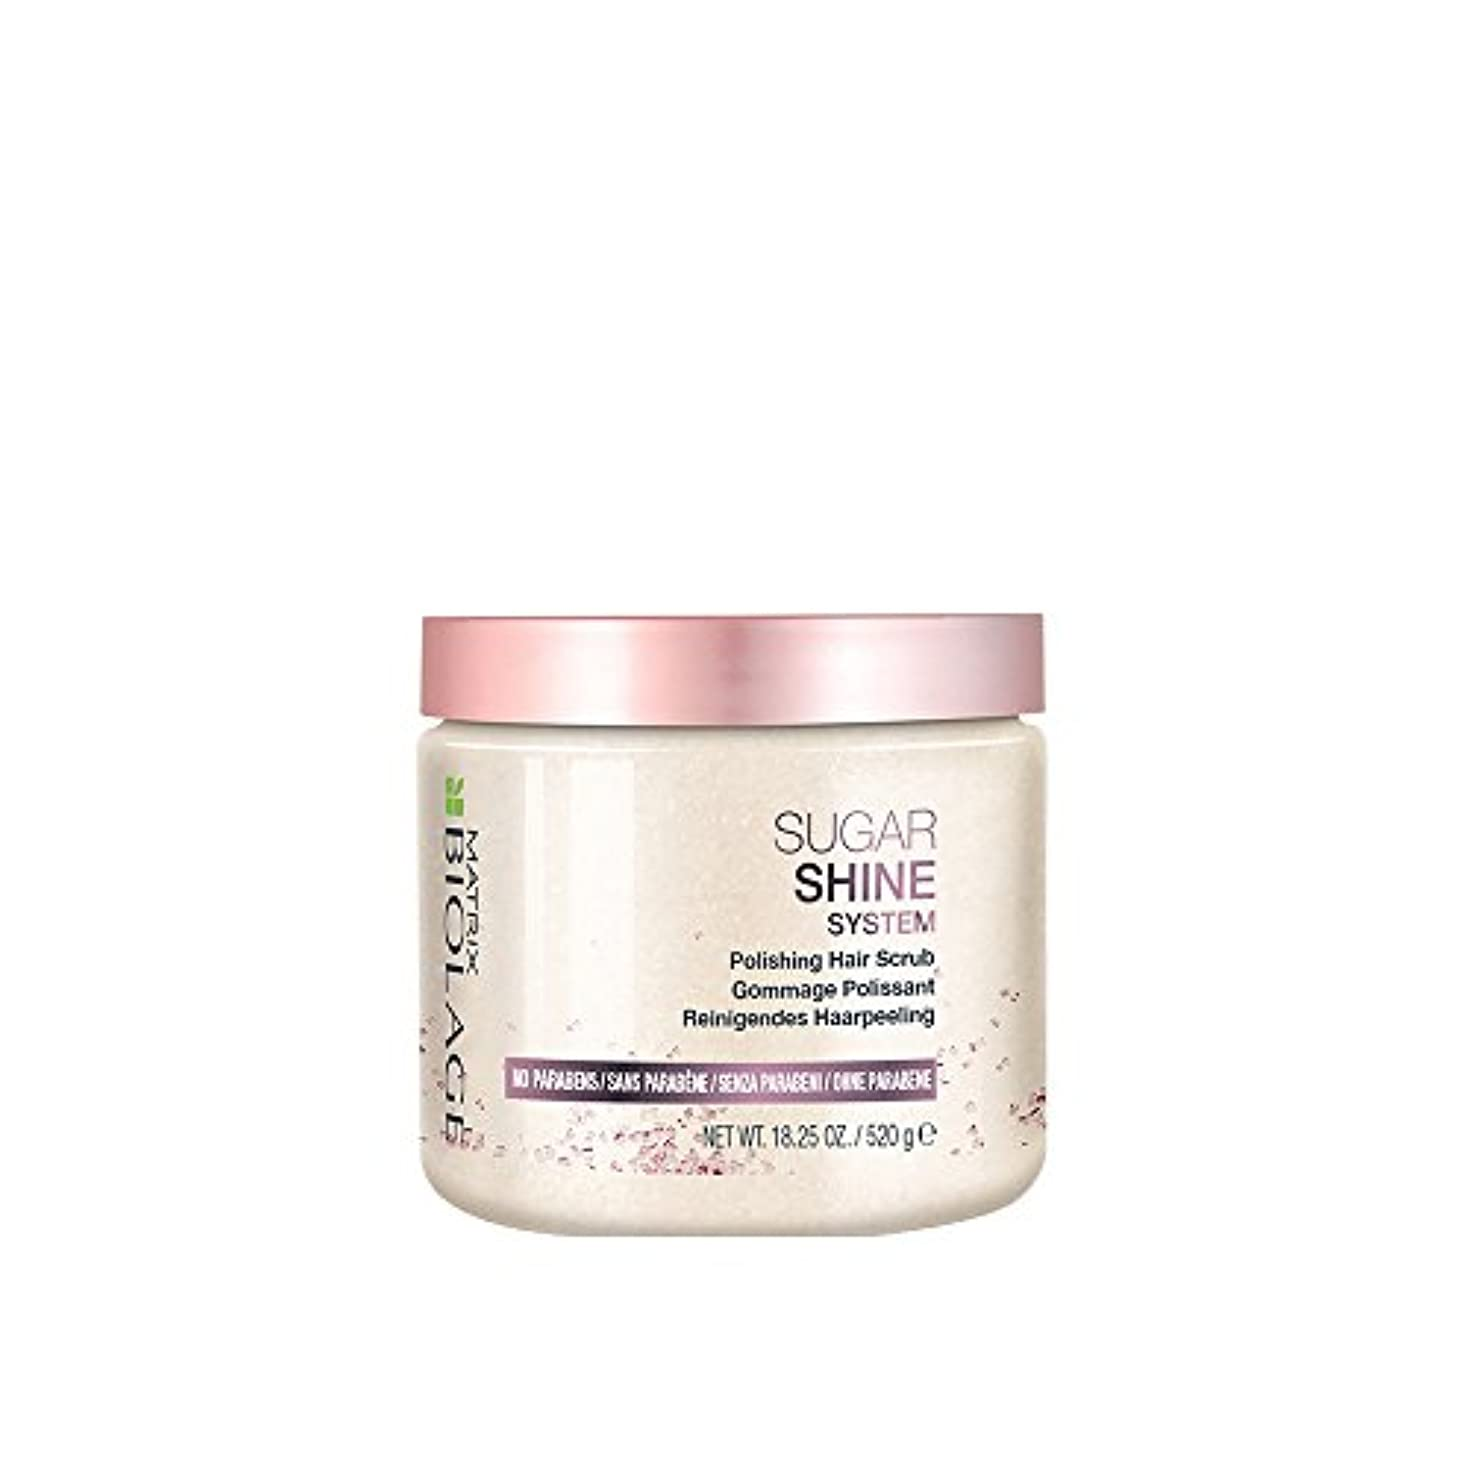 アナニバー牧師経由でマトリックス Biolage Sugar Shine System Polishing Hair Scrub 520g/18.25oz